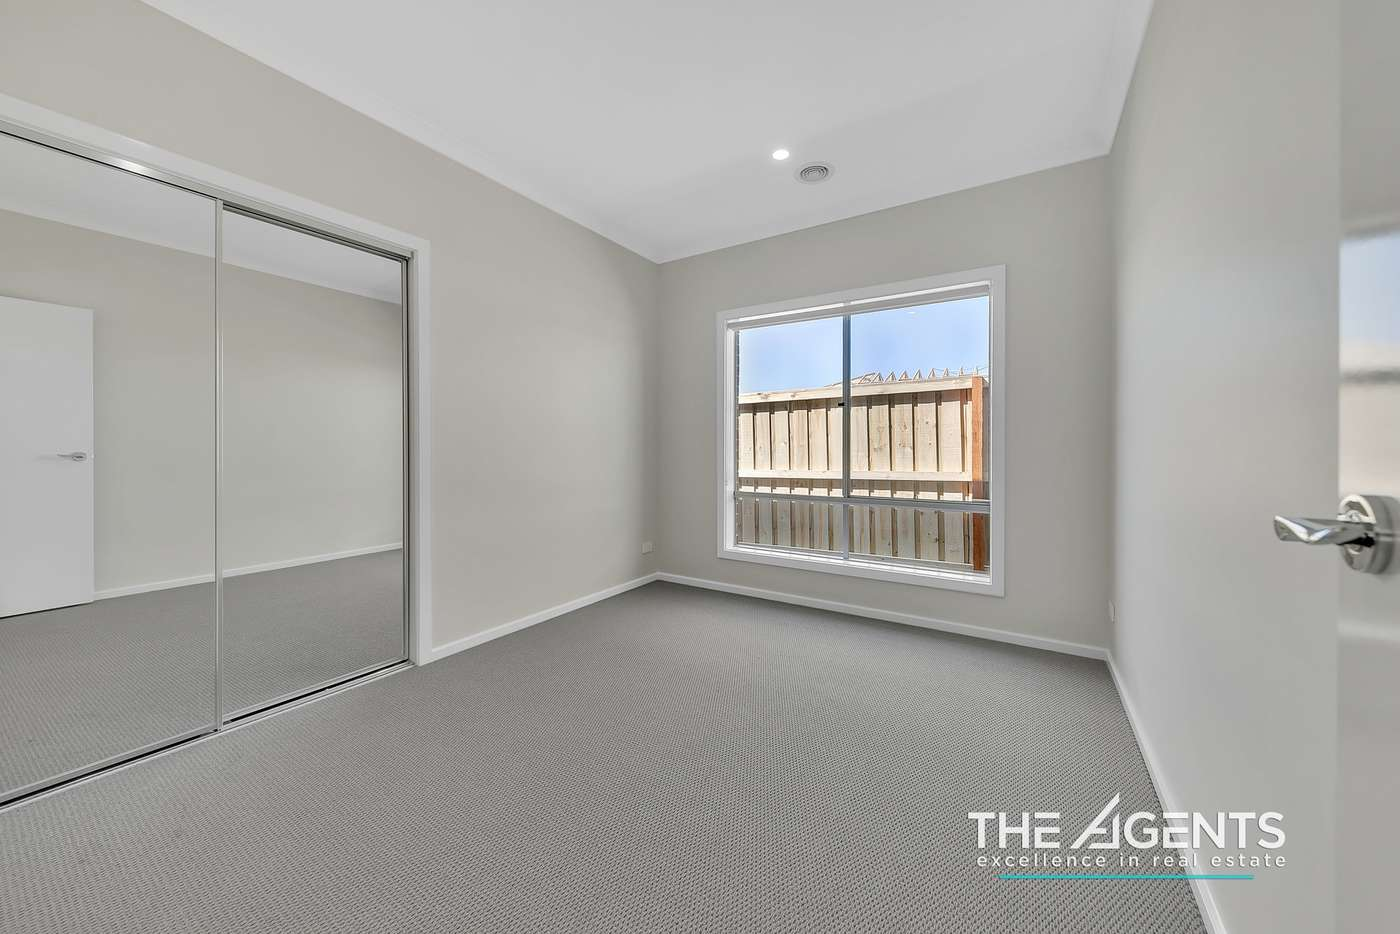 Seventh view of Homely house listing, 49 Dajara Avenue, Wyndham Vale VIC 3024